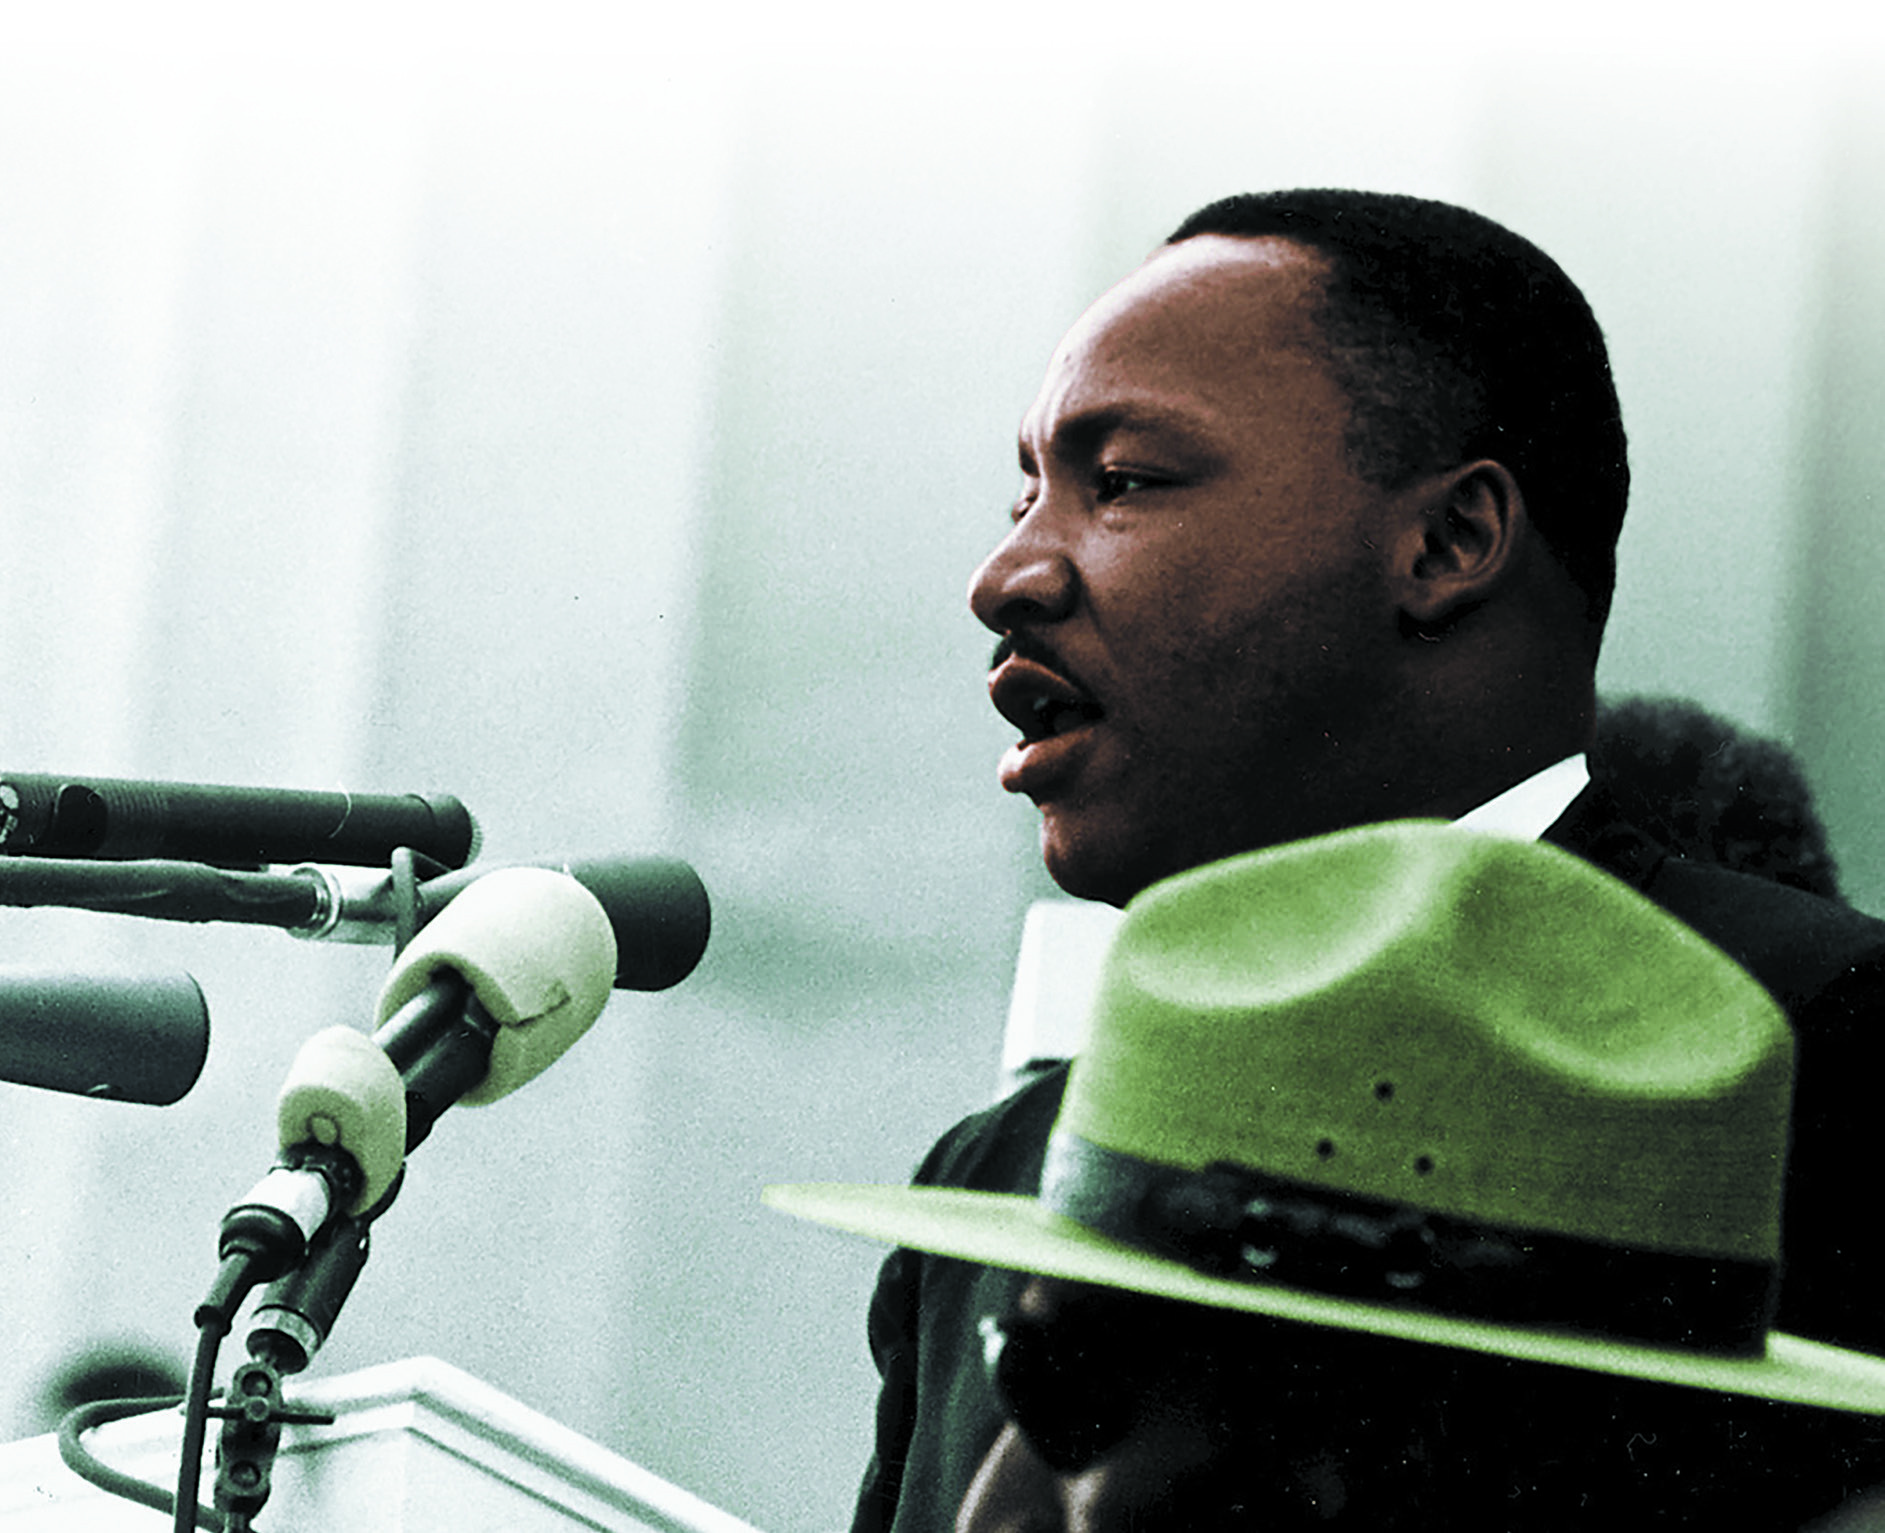 martin luther king jr day - photo #29